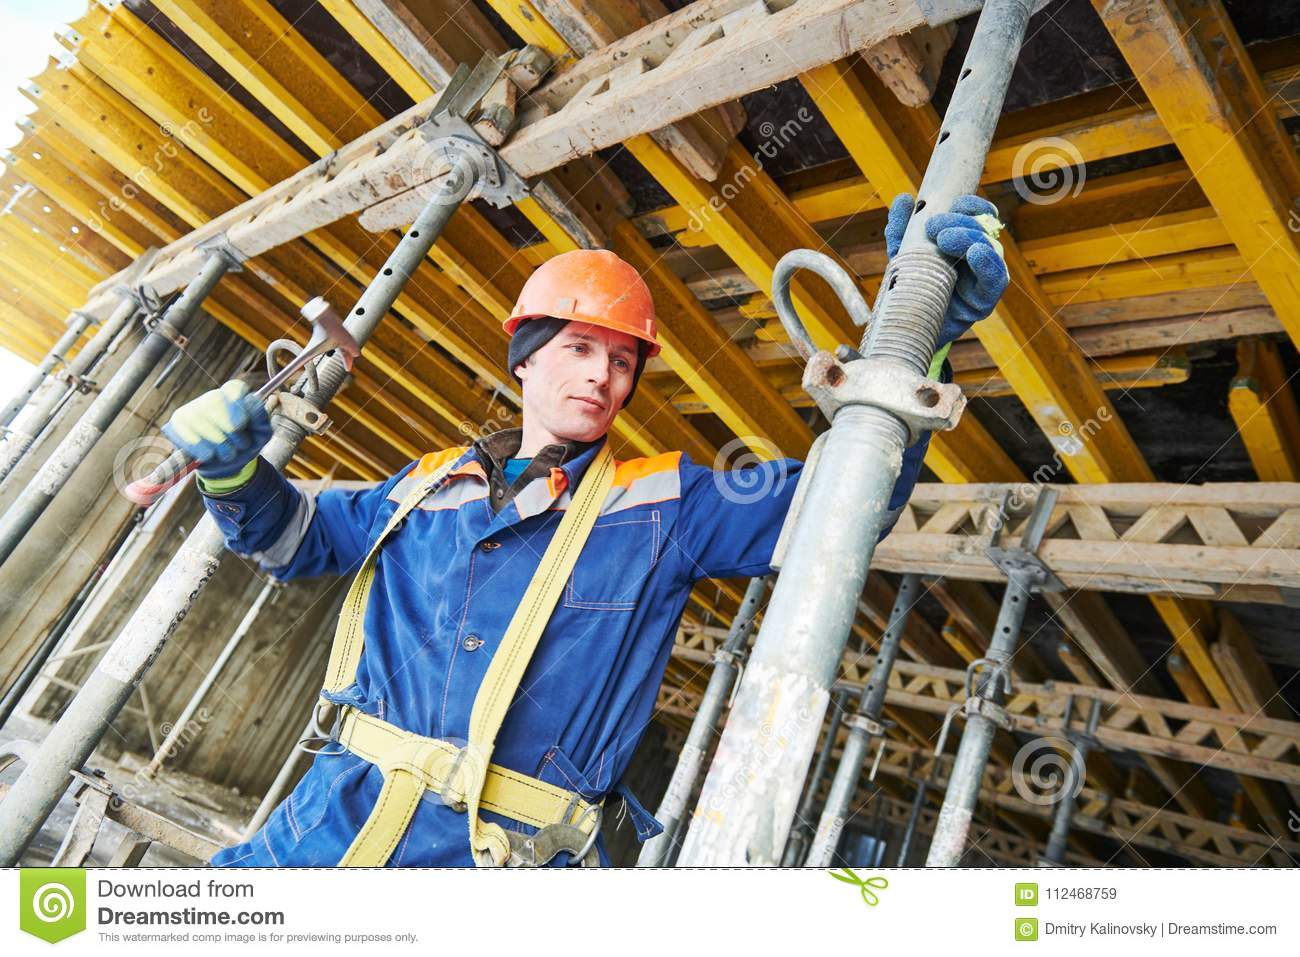 Builder installing or dismantling pole support for concrete monolithic formwork at housebuilding